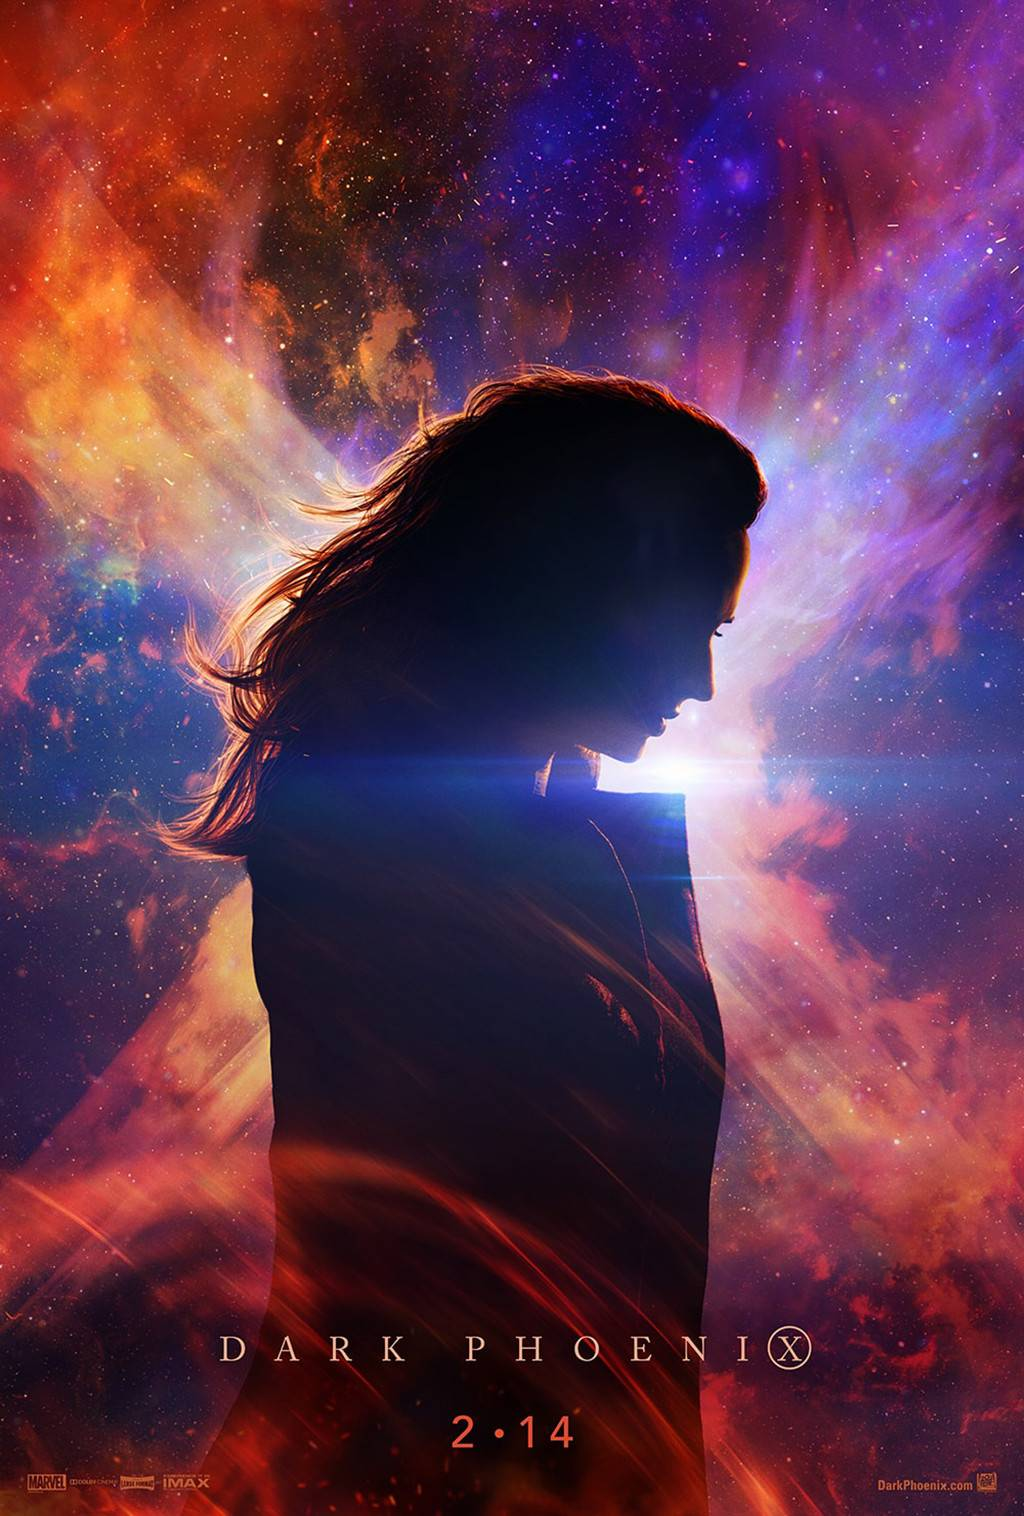 DARK PHOENIX movie trailer